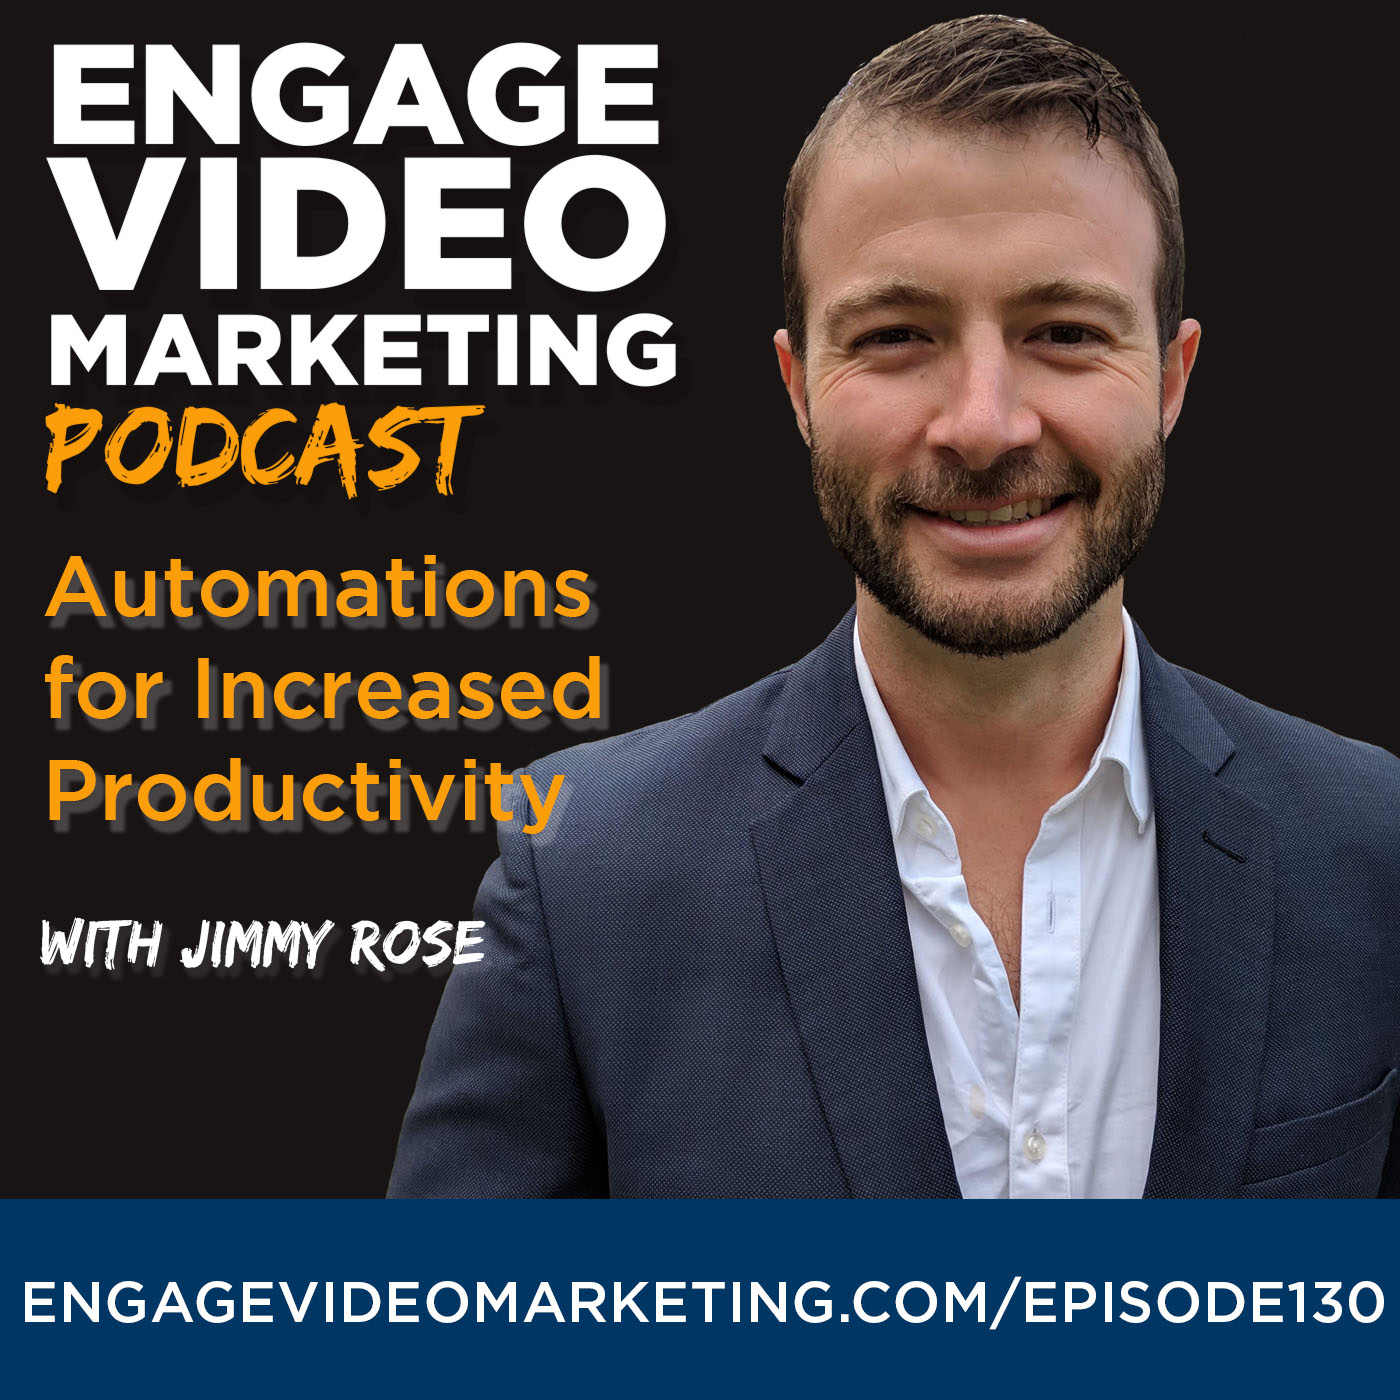 Automations for Increased Productivity with Jimmy Rose